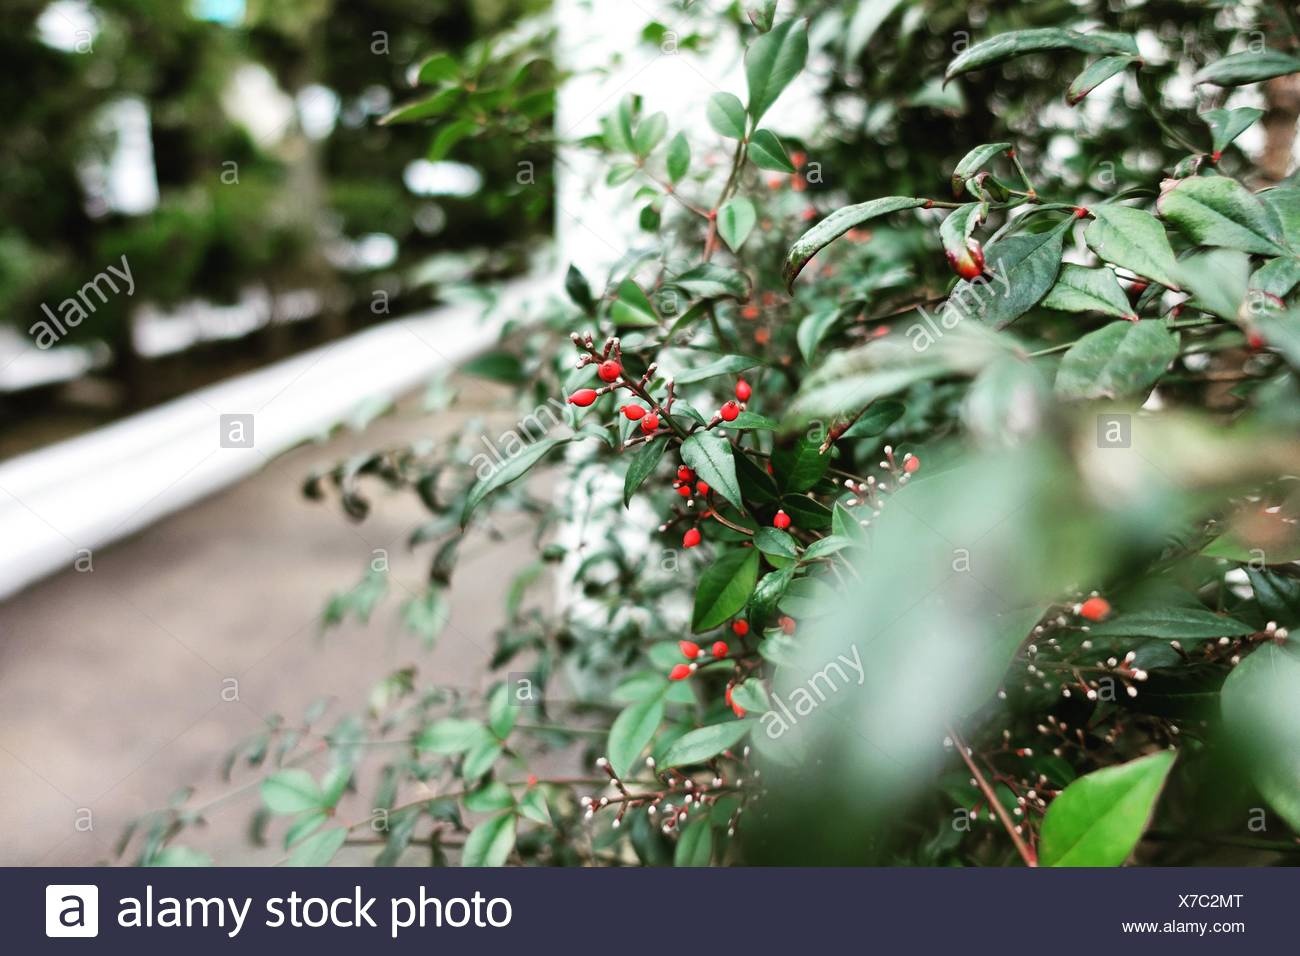 Plants At Back Yard - Stock Image